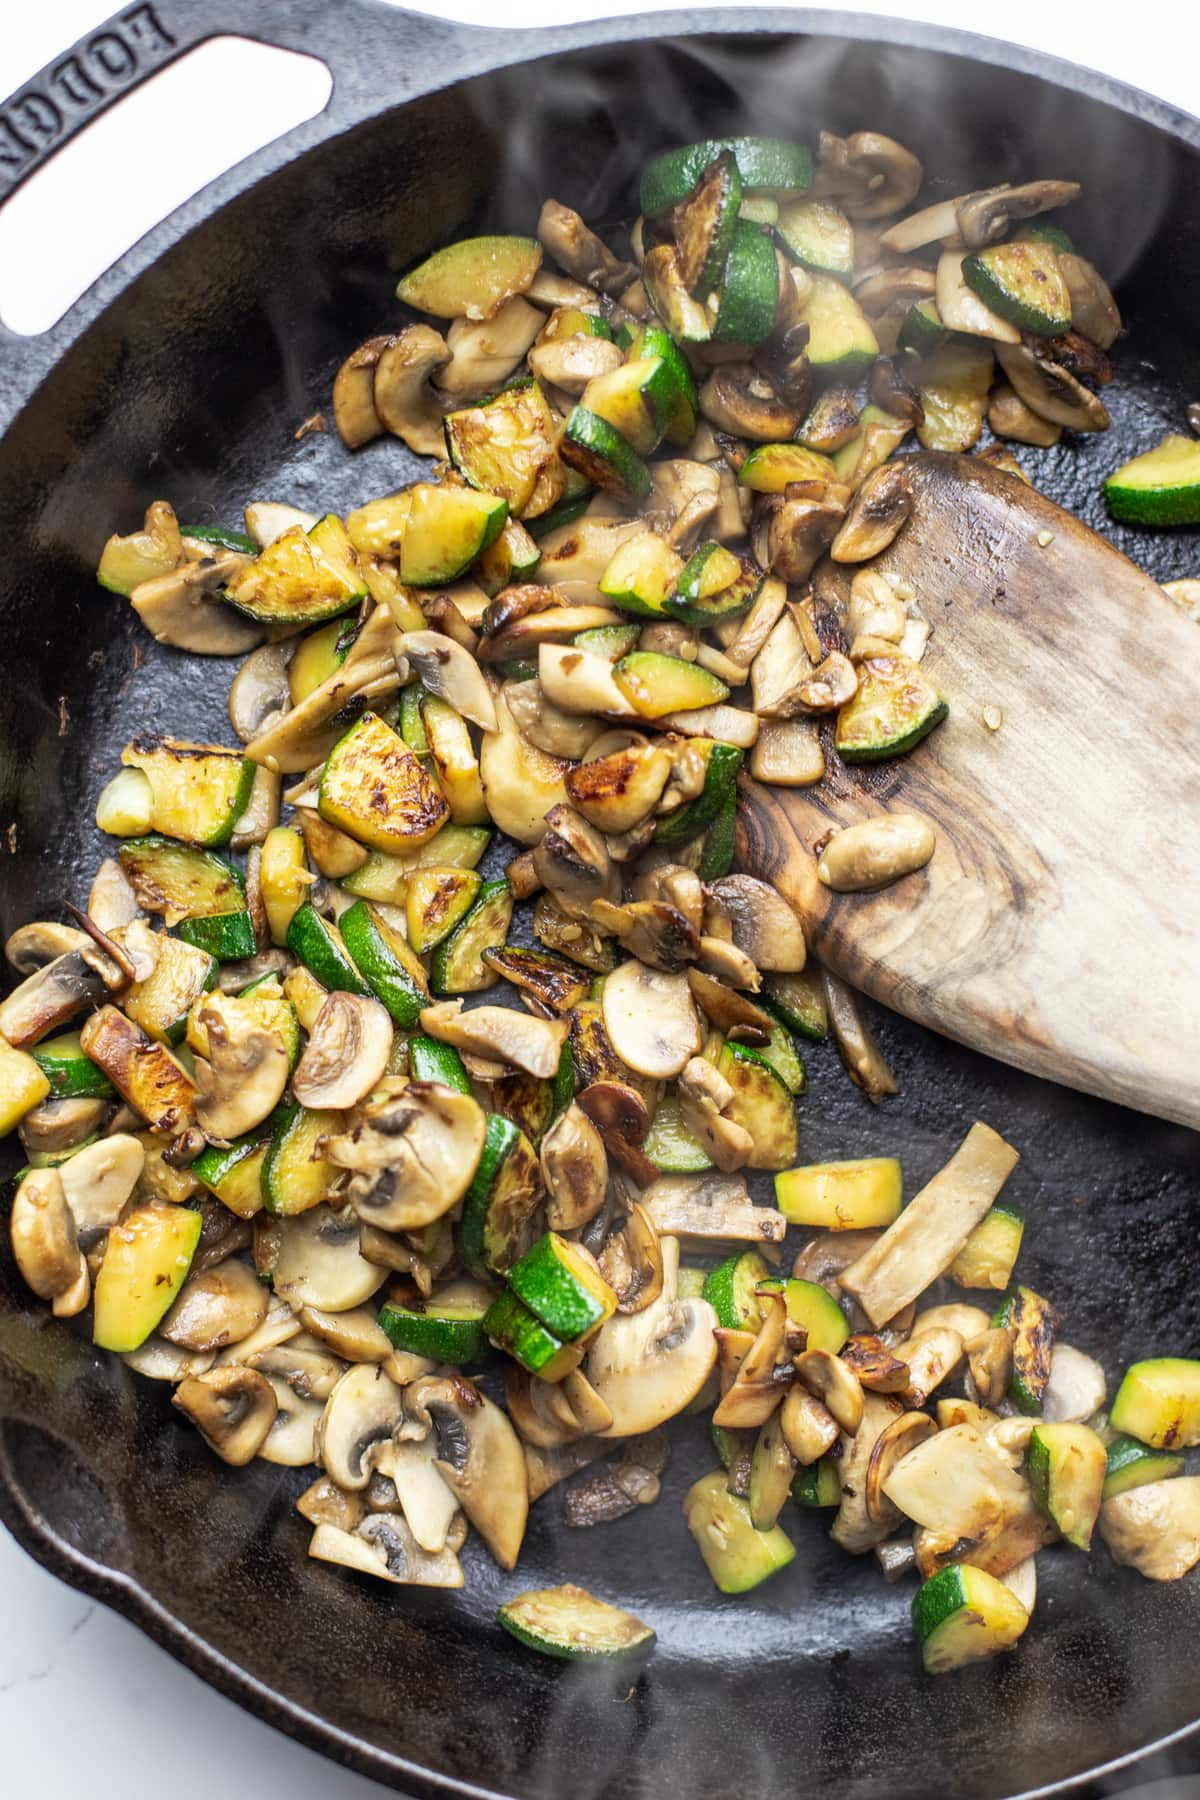 A wooden spoon stirring sauteed mushrooms and zucchini in a black cast iron skillet.